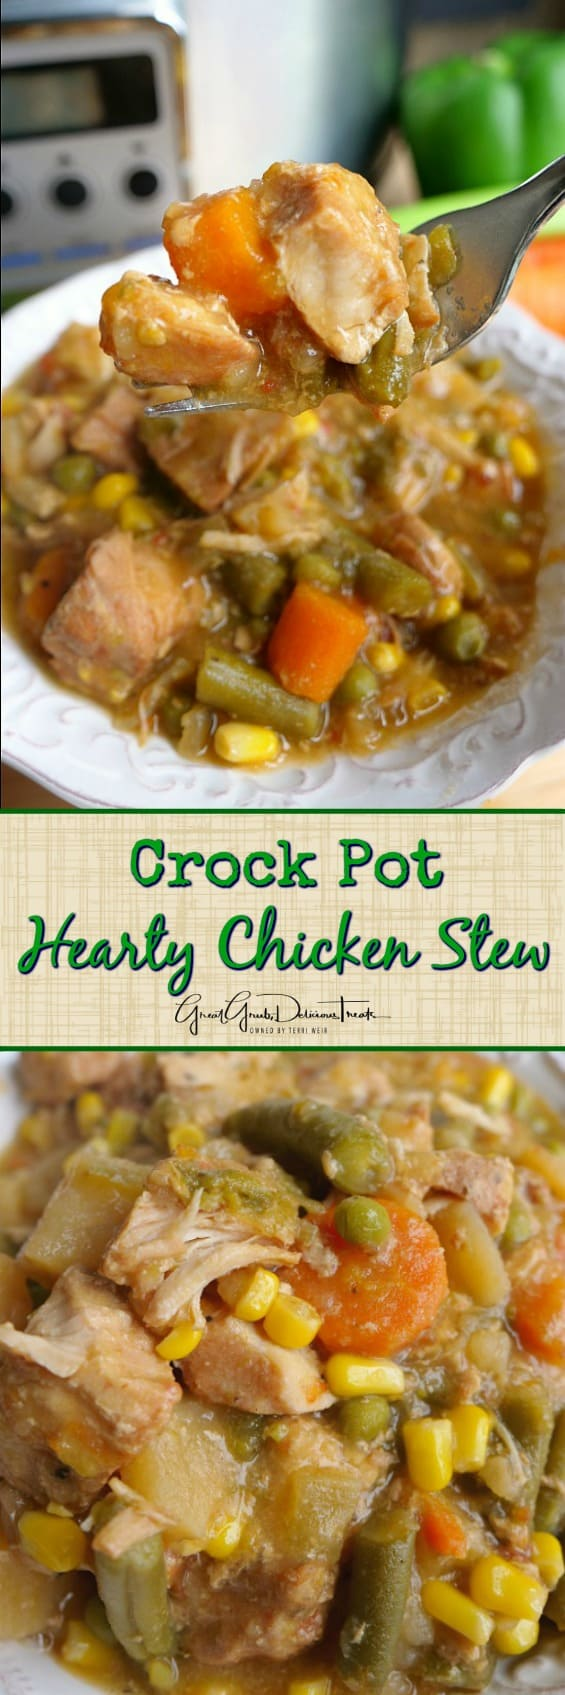 Crock Pot Hearty Chicken Stew